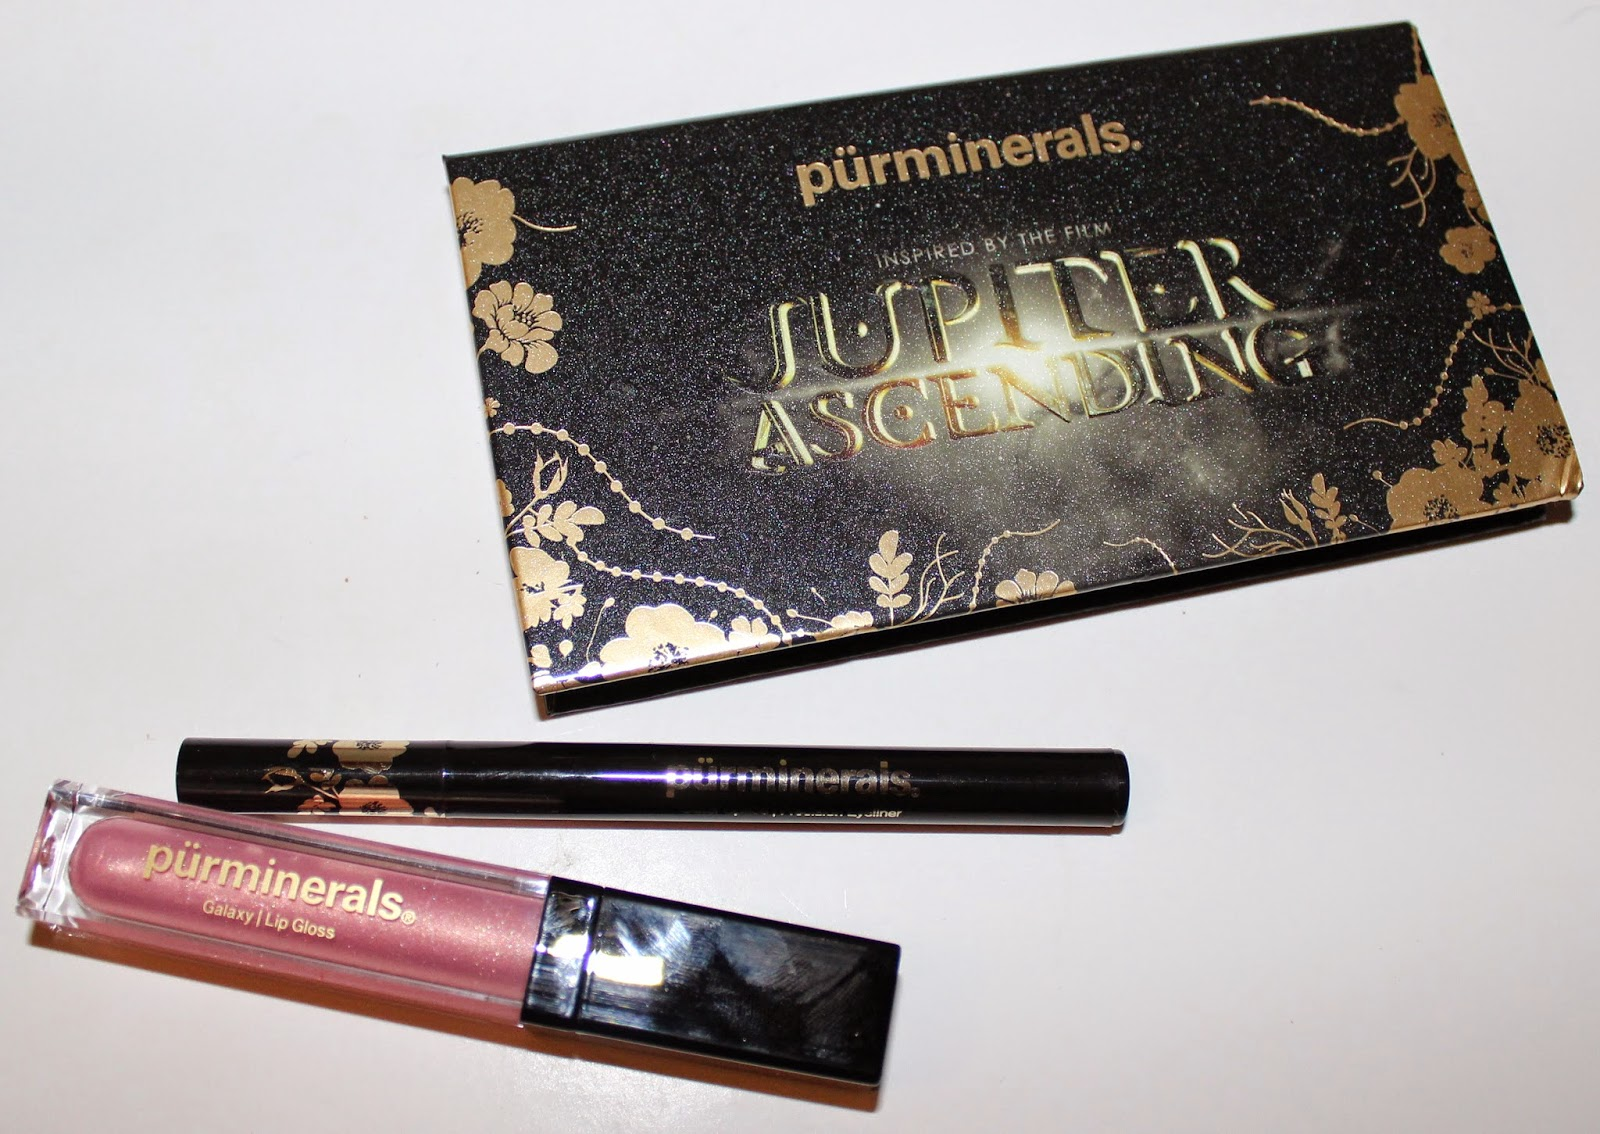 pürminerals Jupiter Ascending Collection